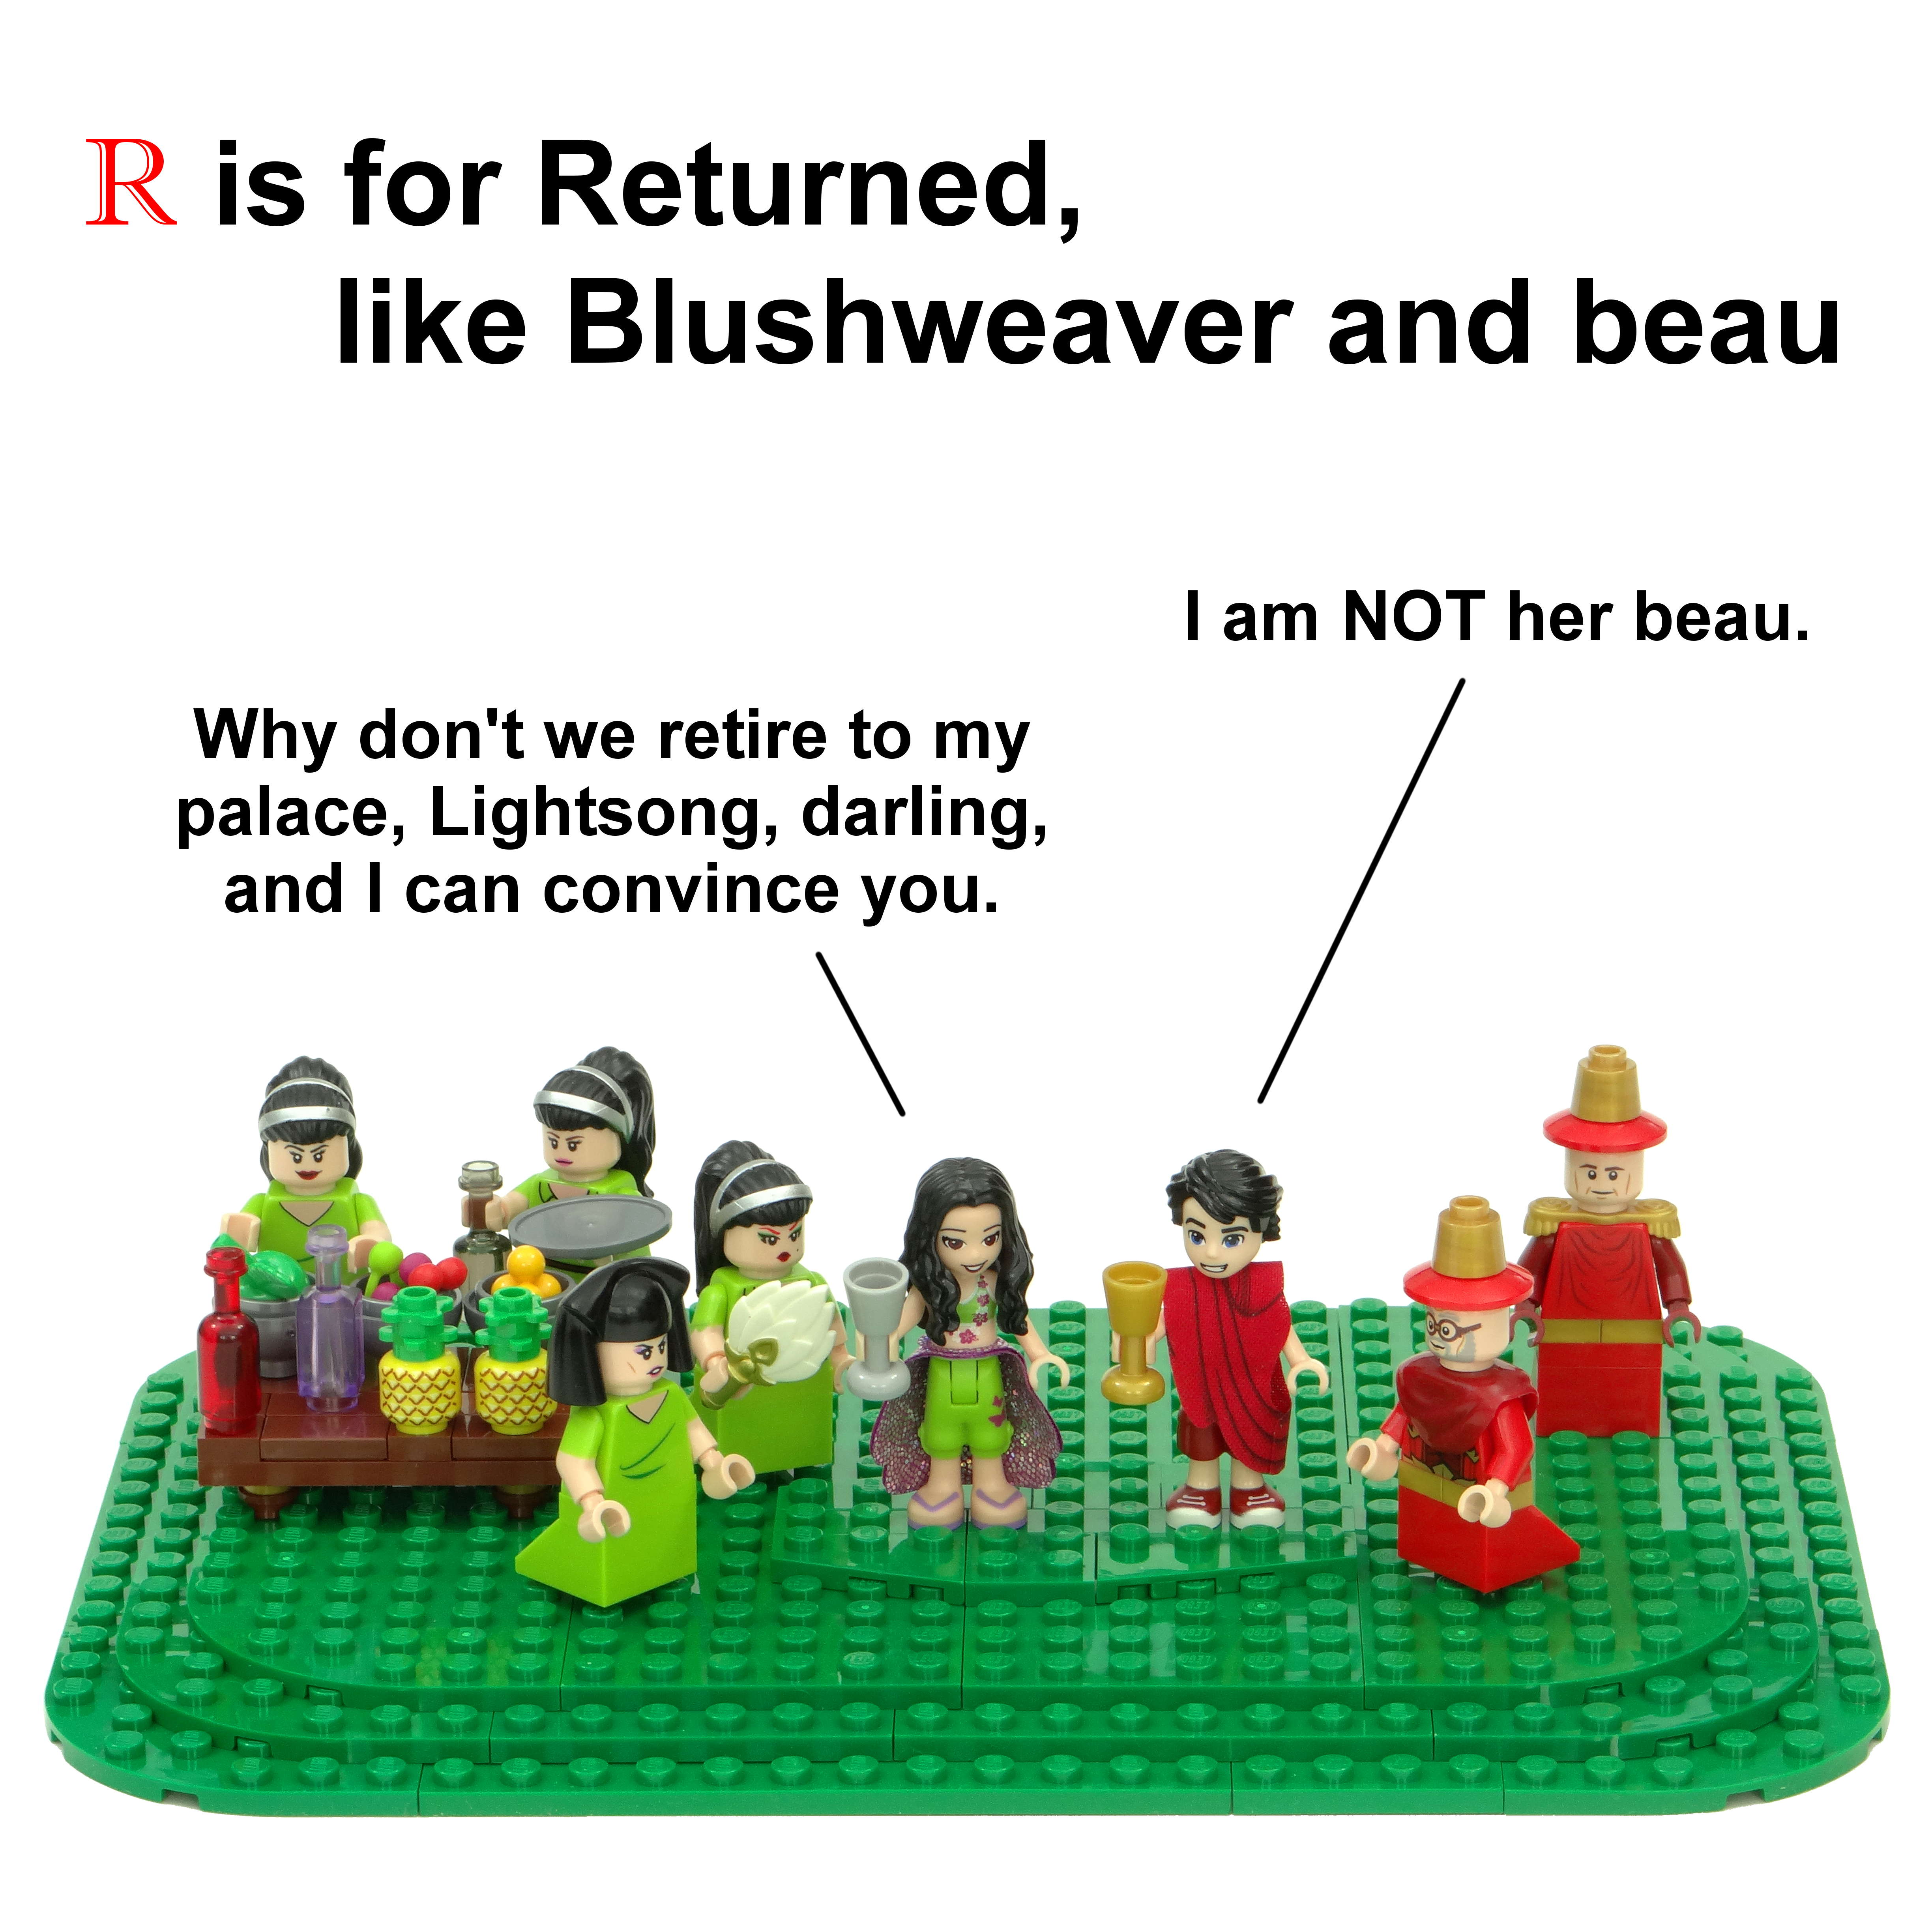 R-is-for-Returned